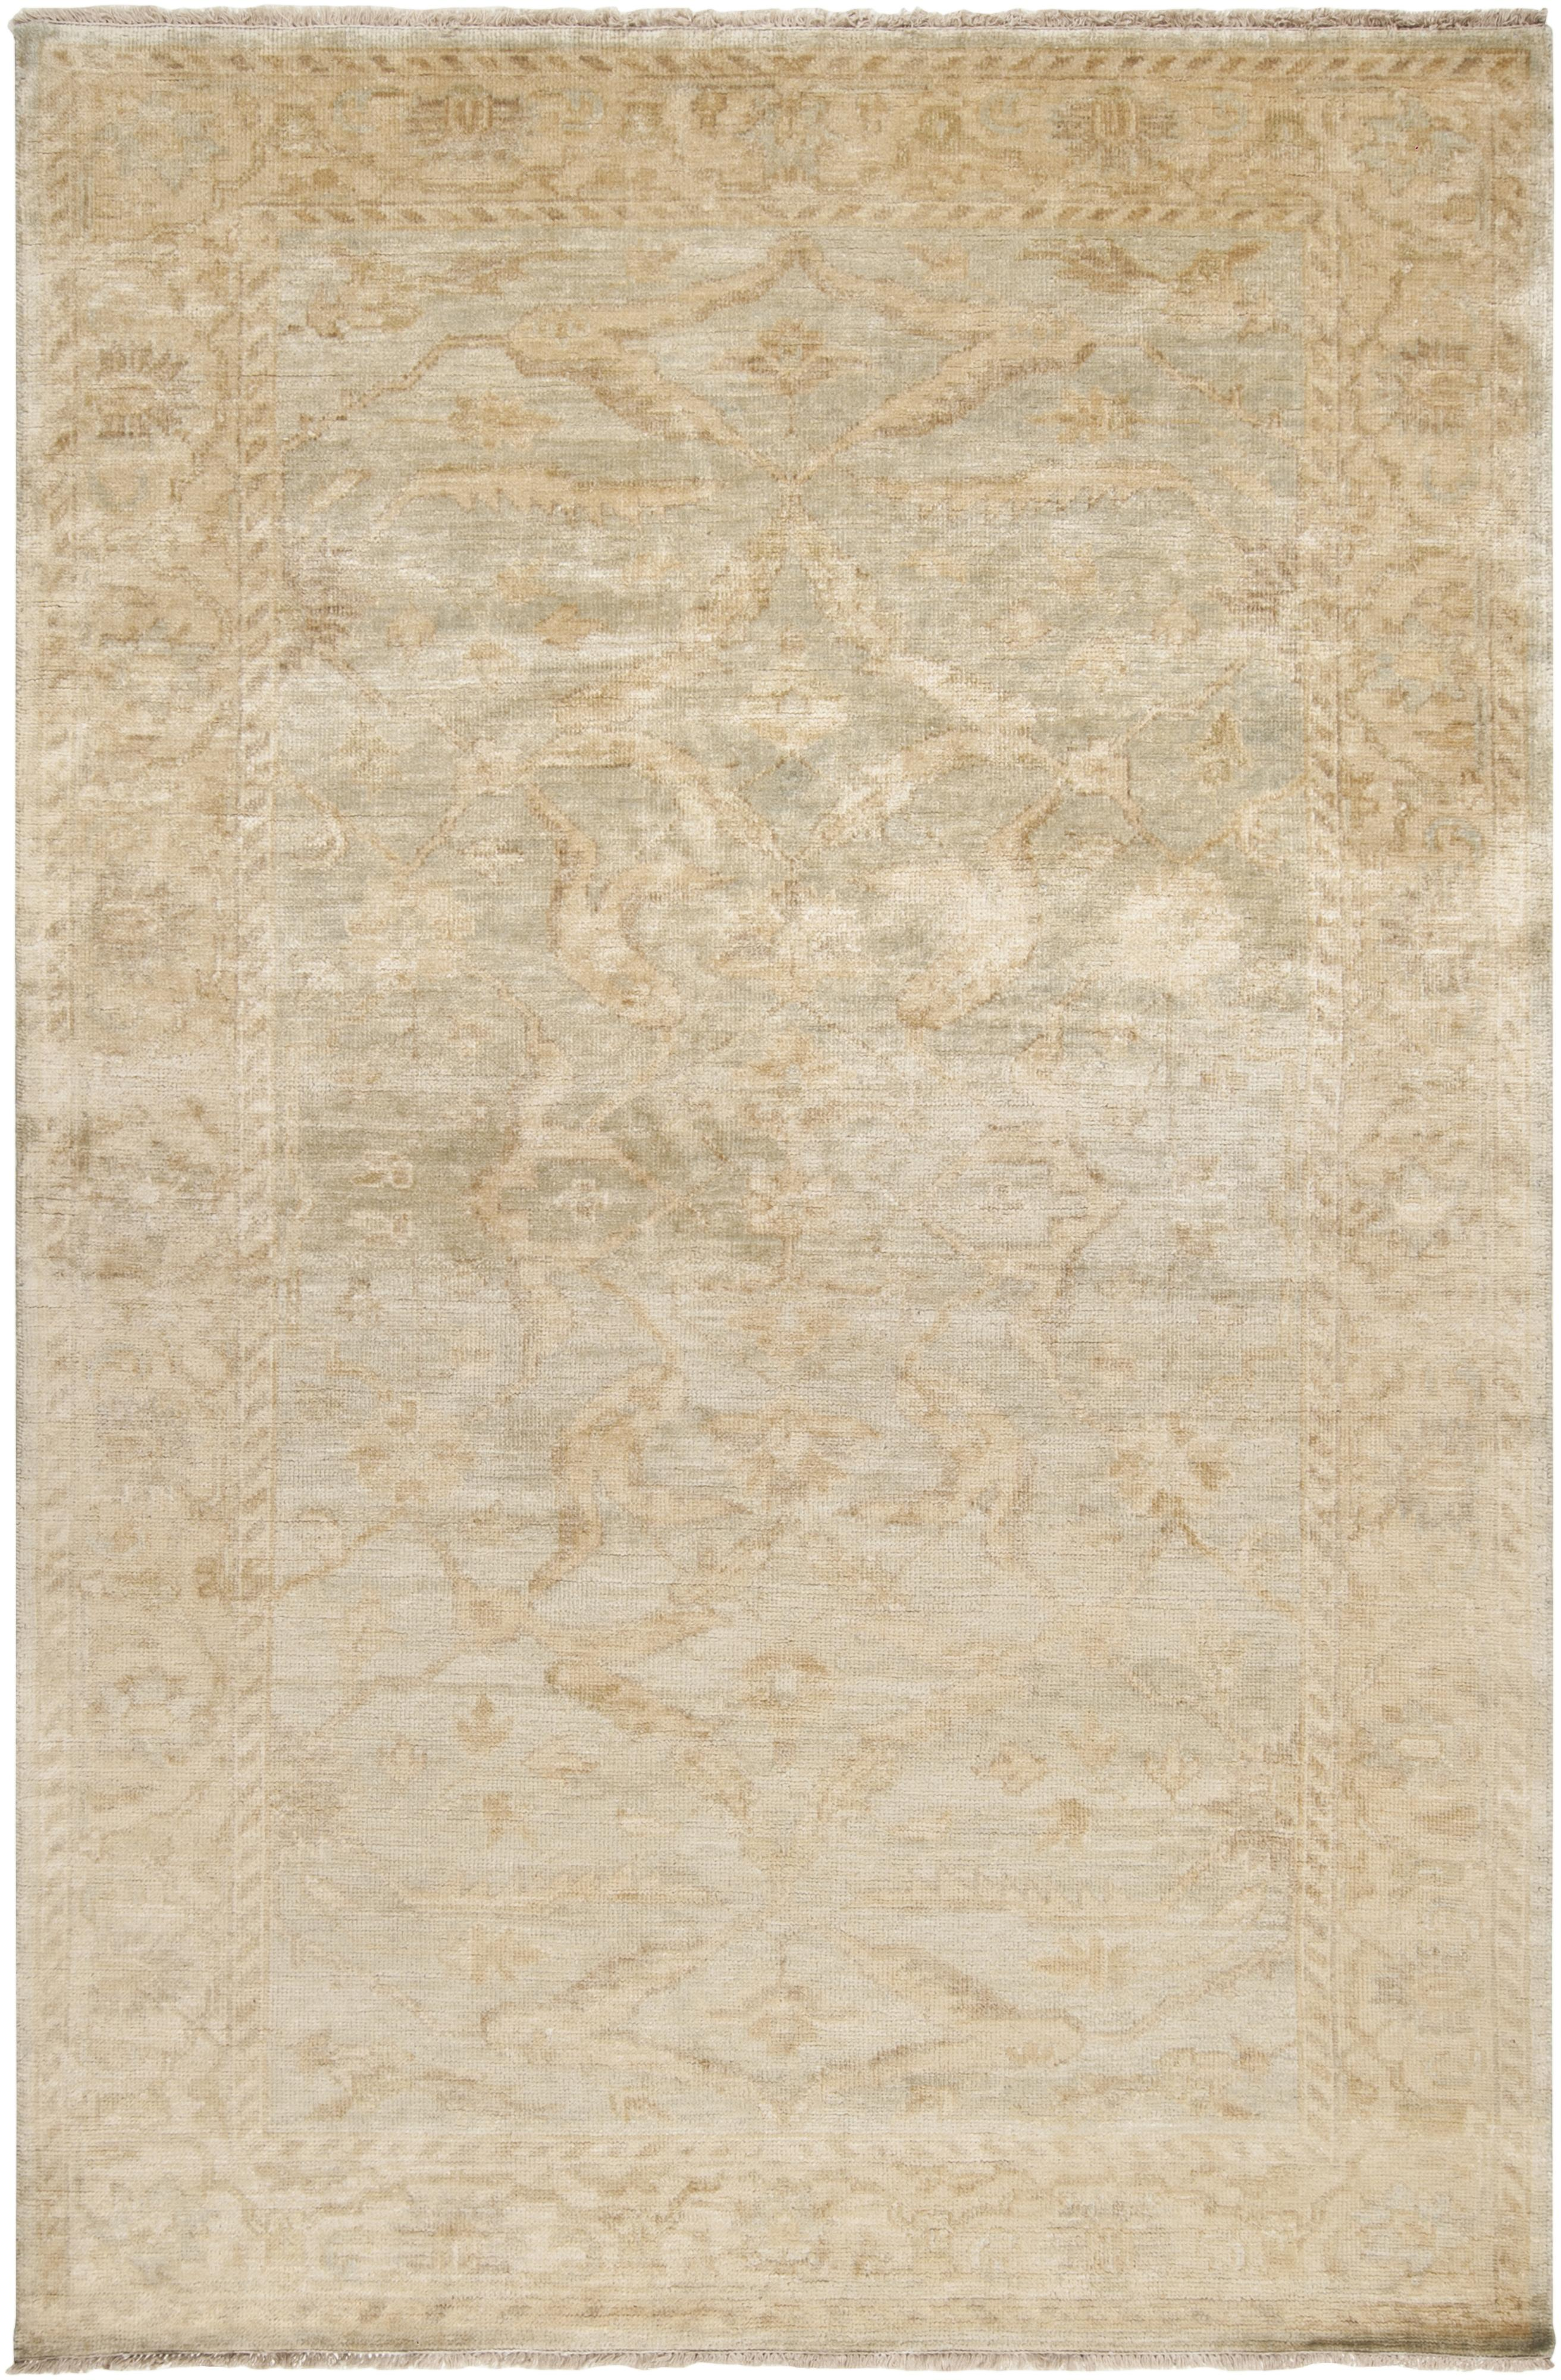 Surya Rugs Hillcrest 8' x 11' - Item Number: HIL9010-811